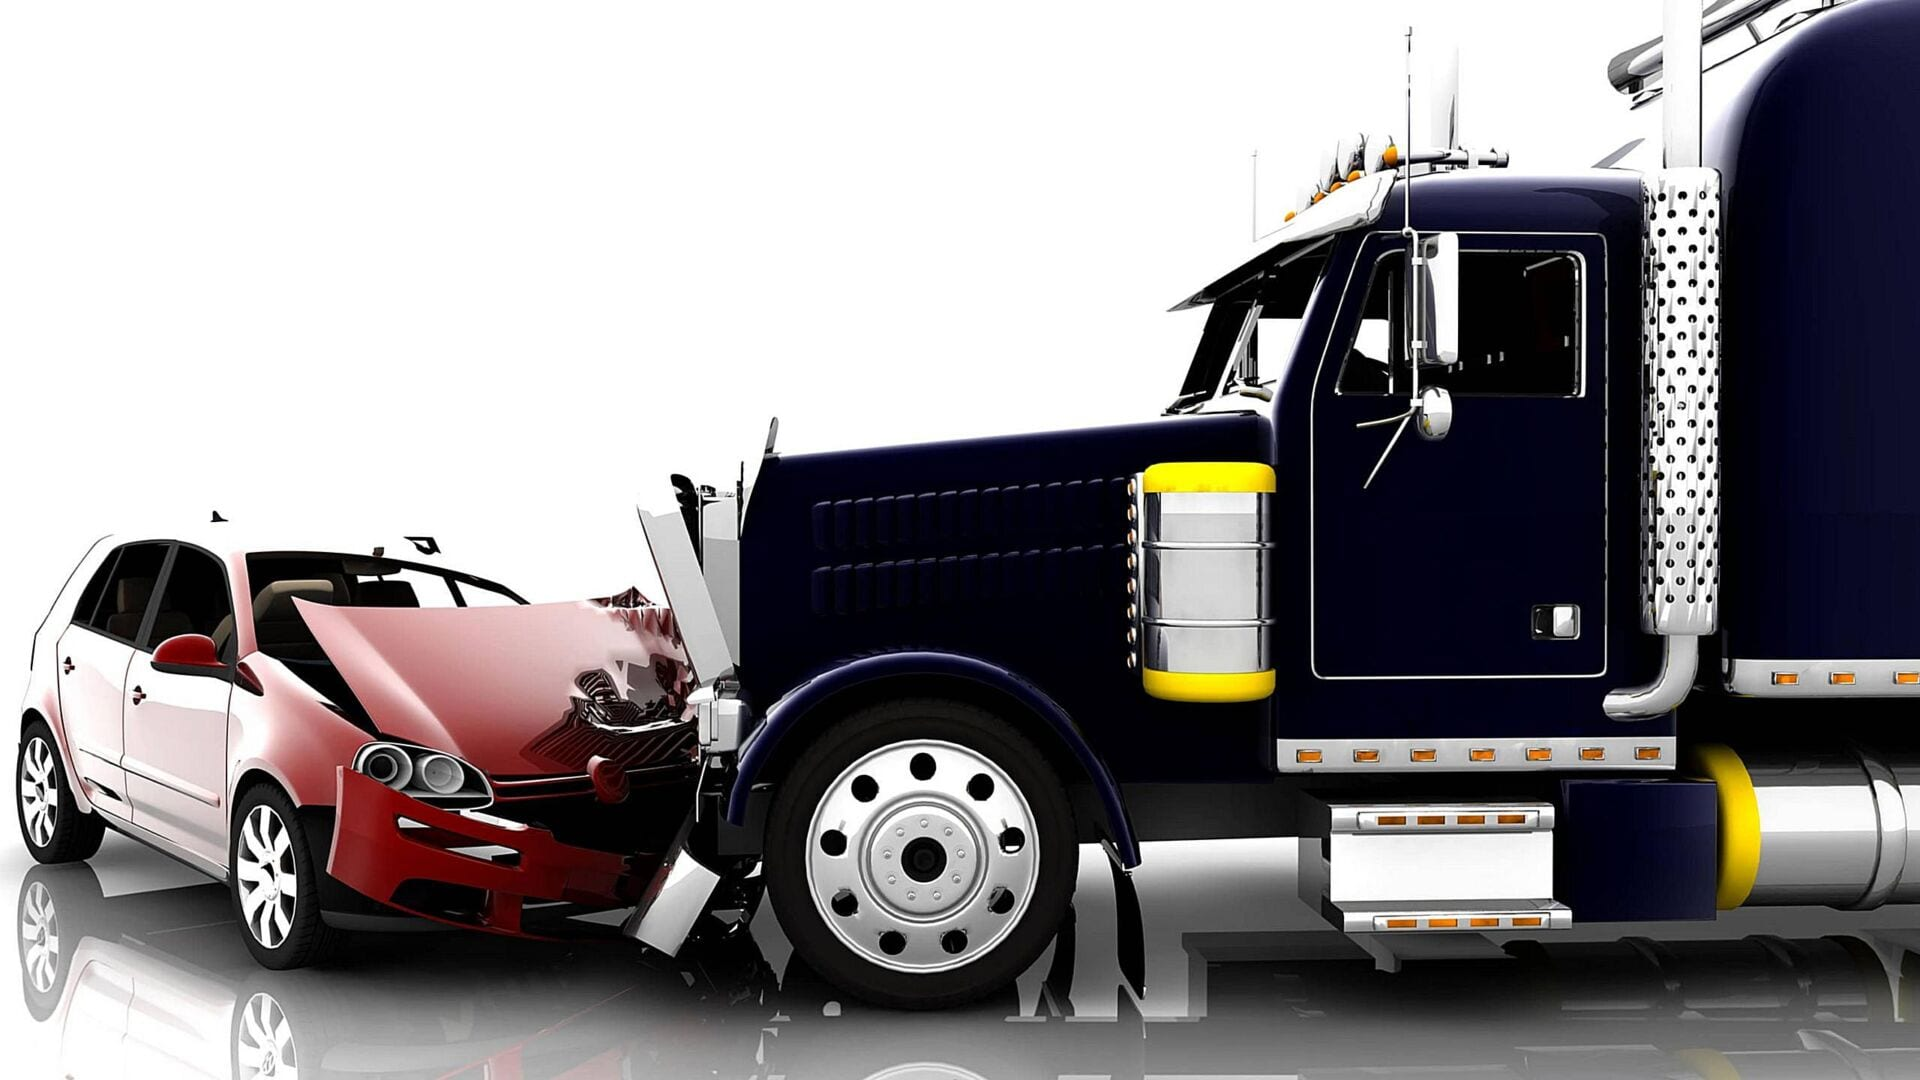 fort worth truck accident injury lawyer